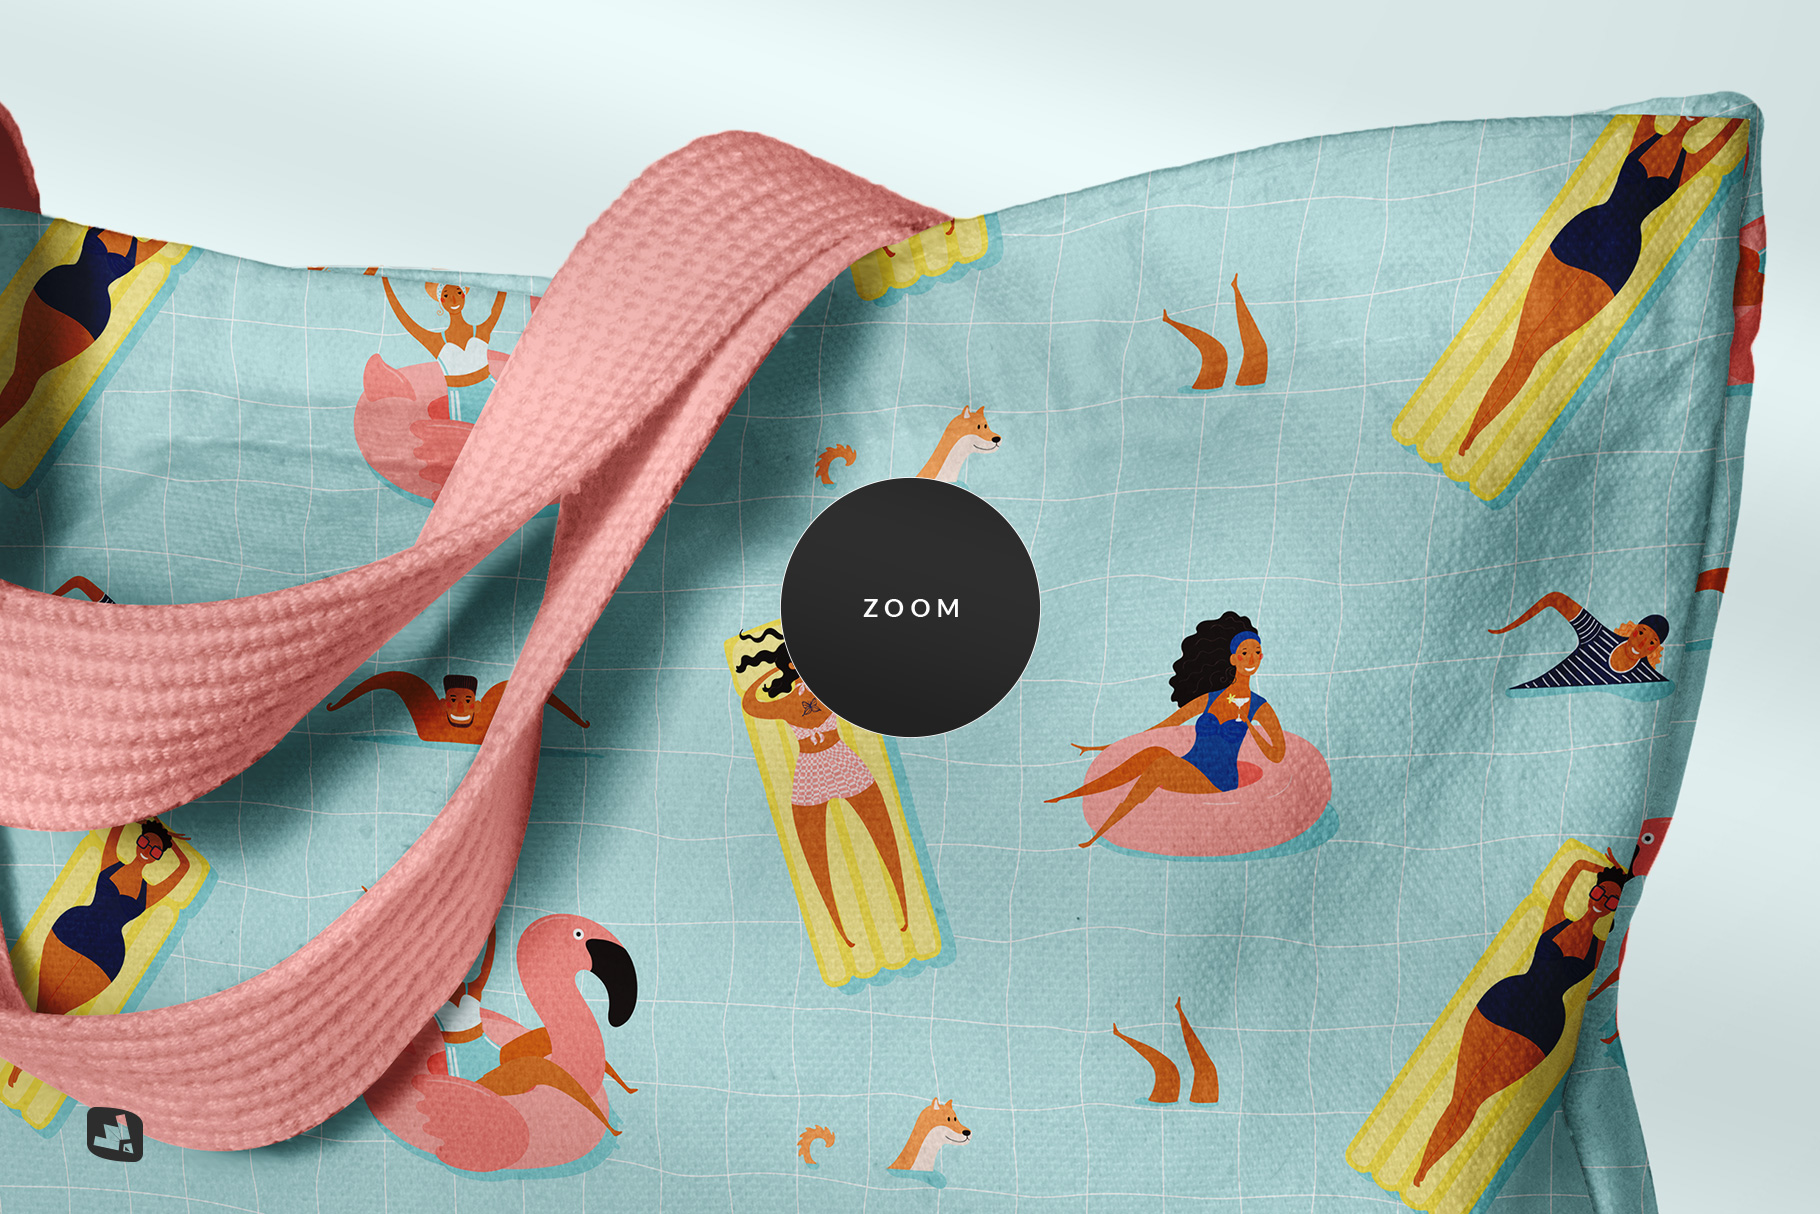 zoomed in image of the reusable cotton cloth bag mockup